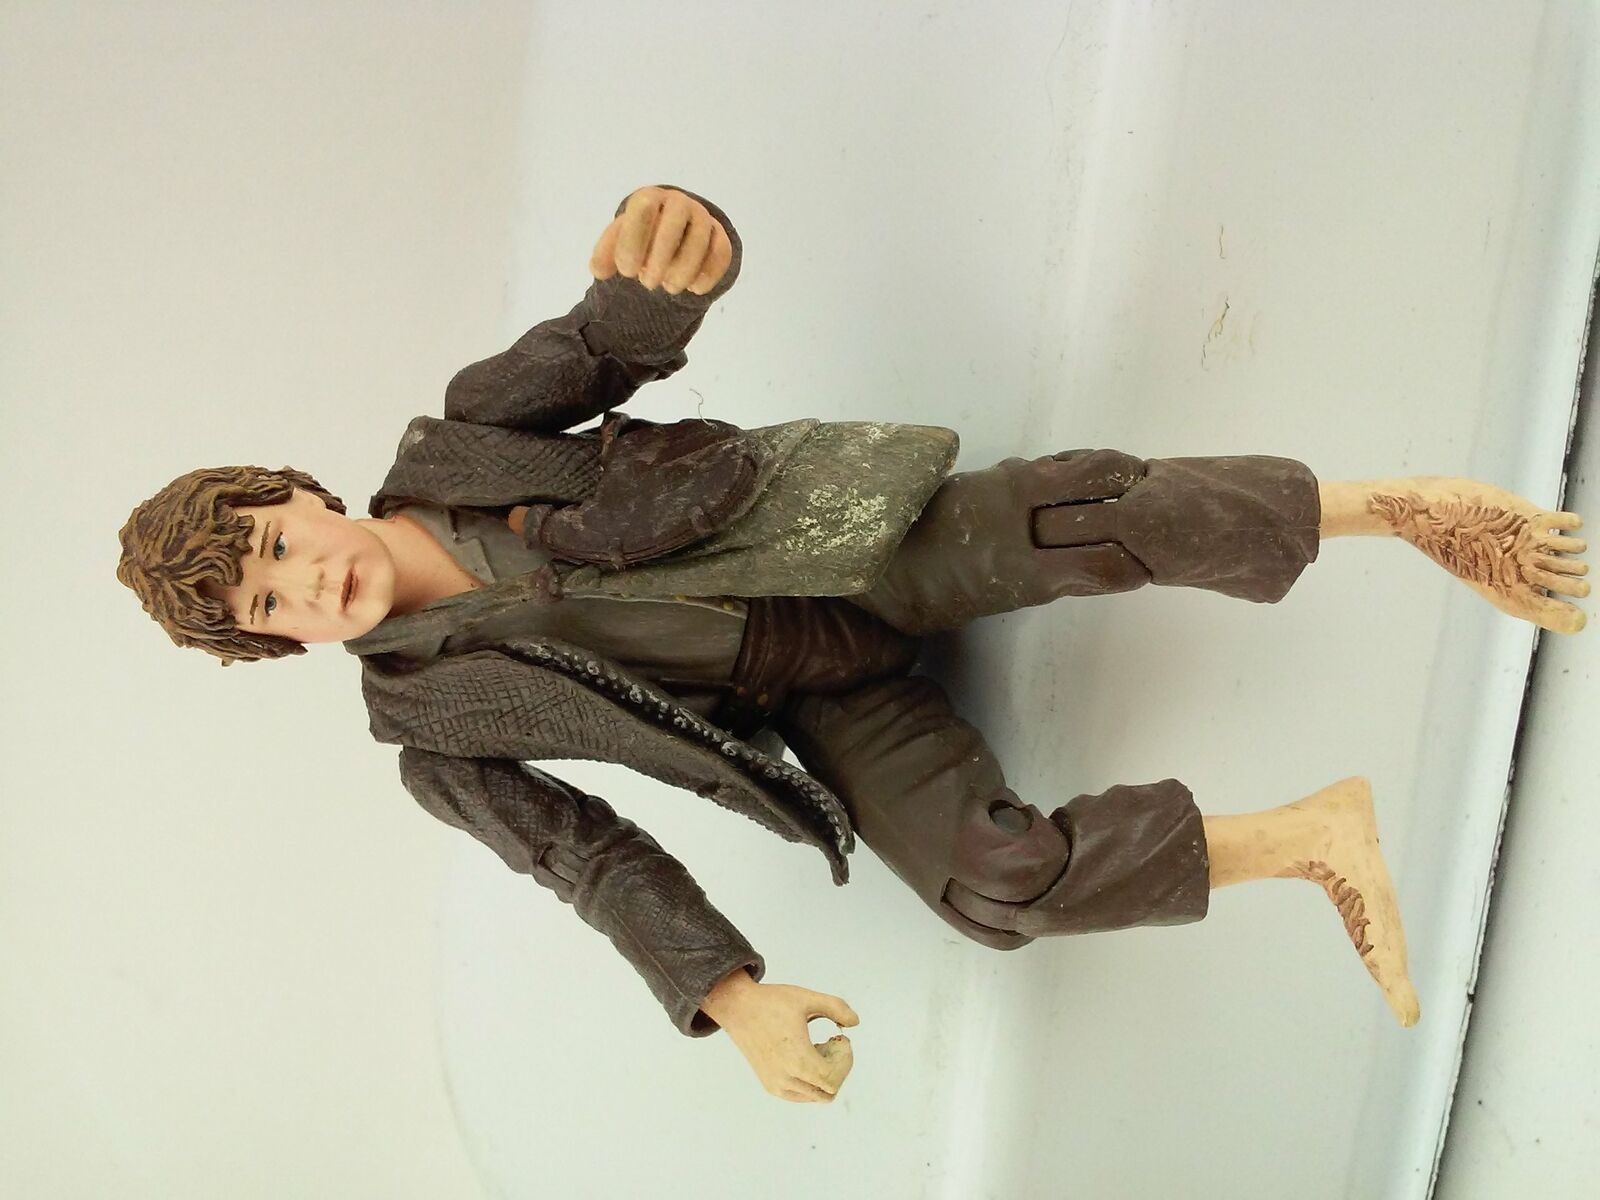 2002 NLP Marvel Lord of the Rings Hobbit Action Figure image 3